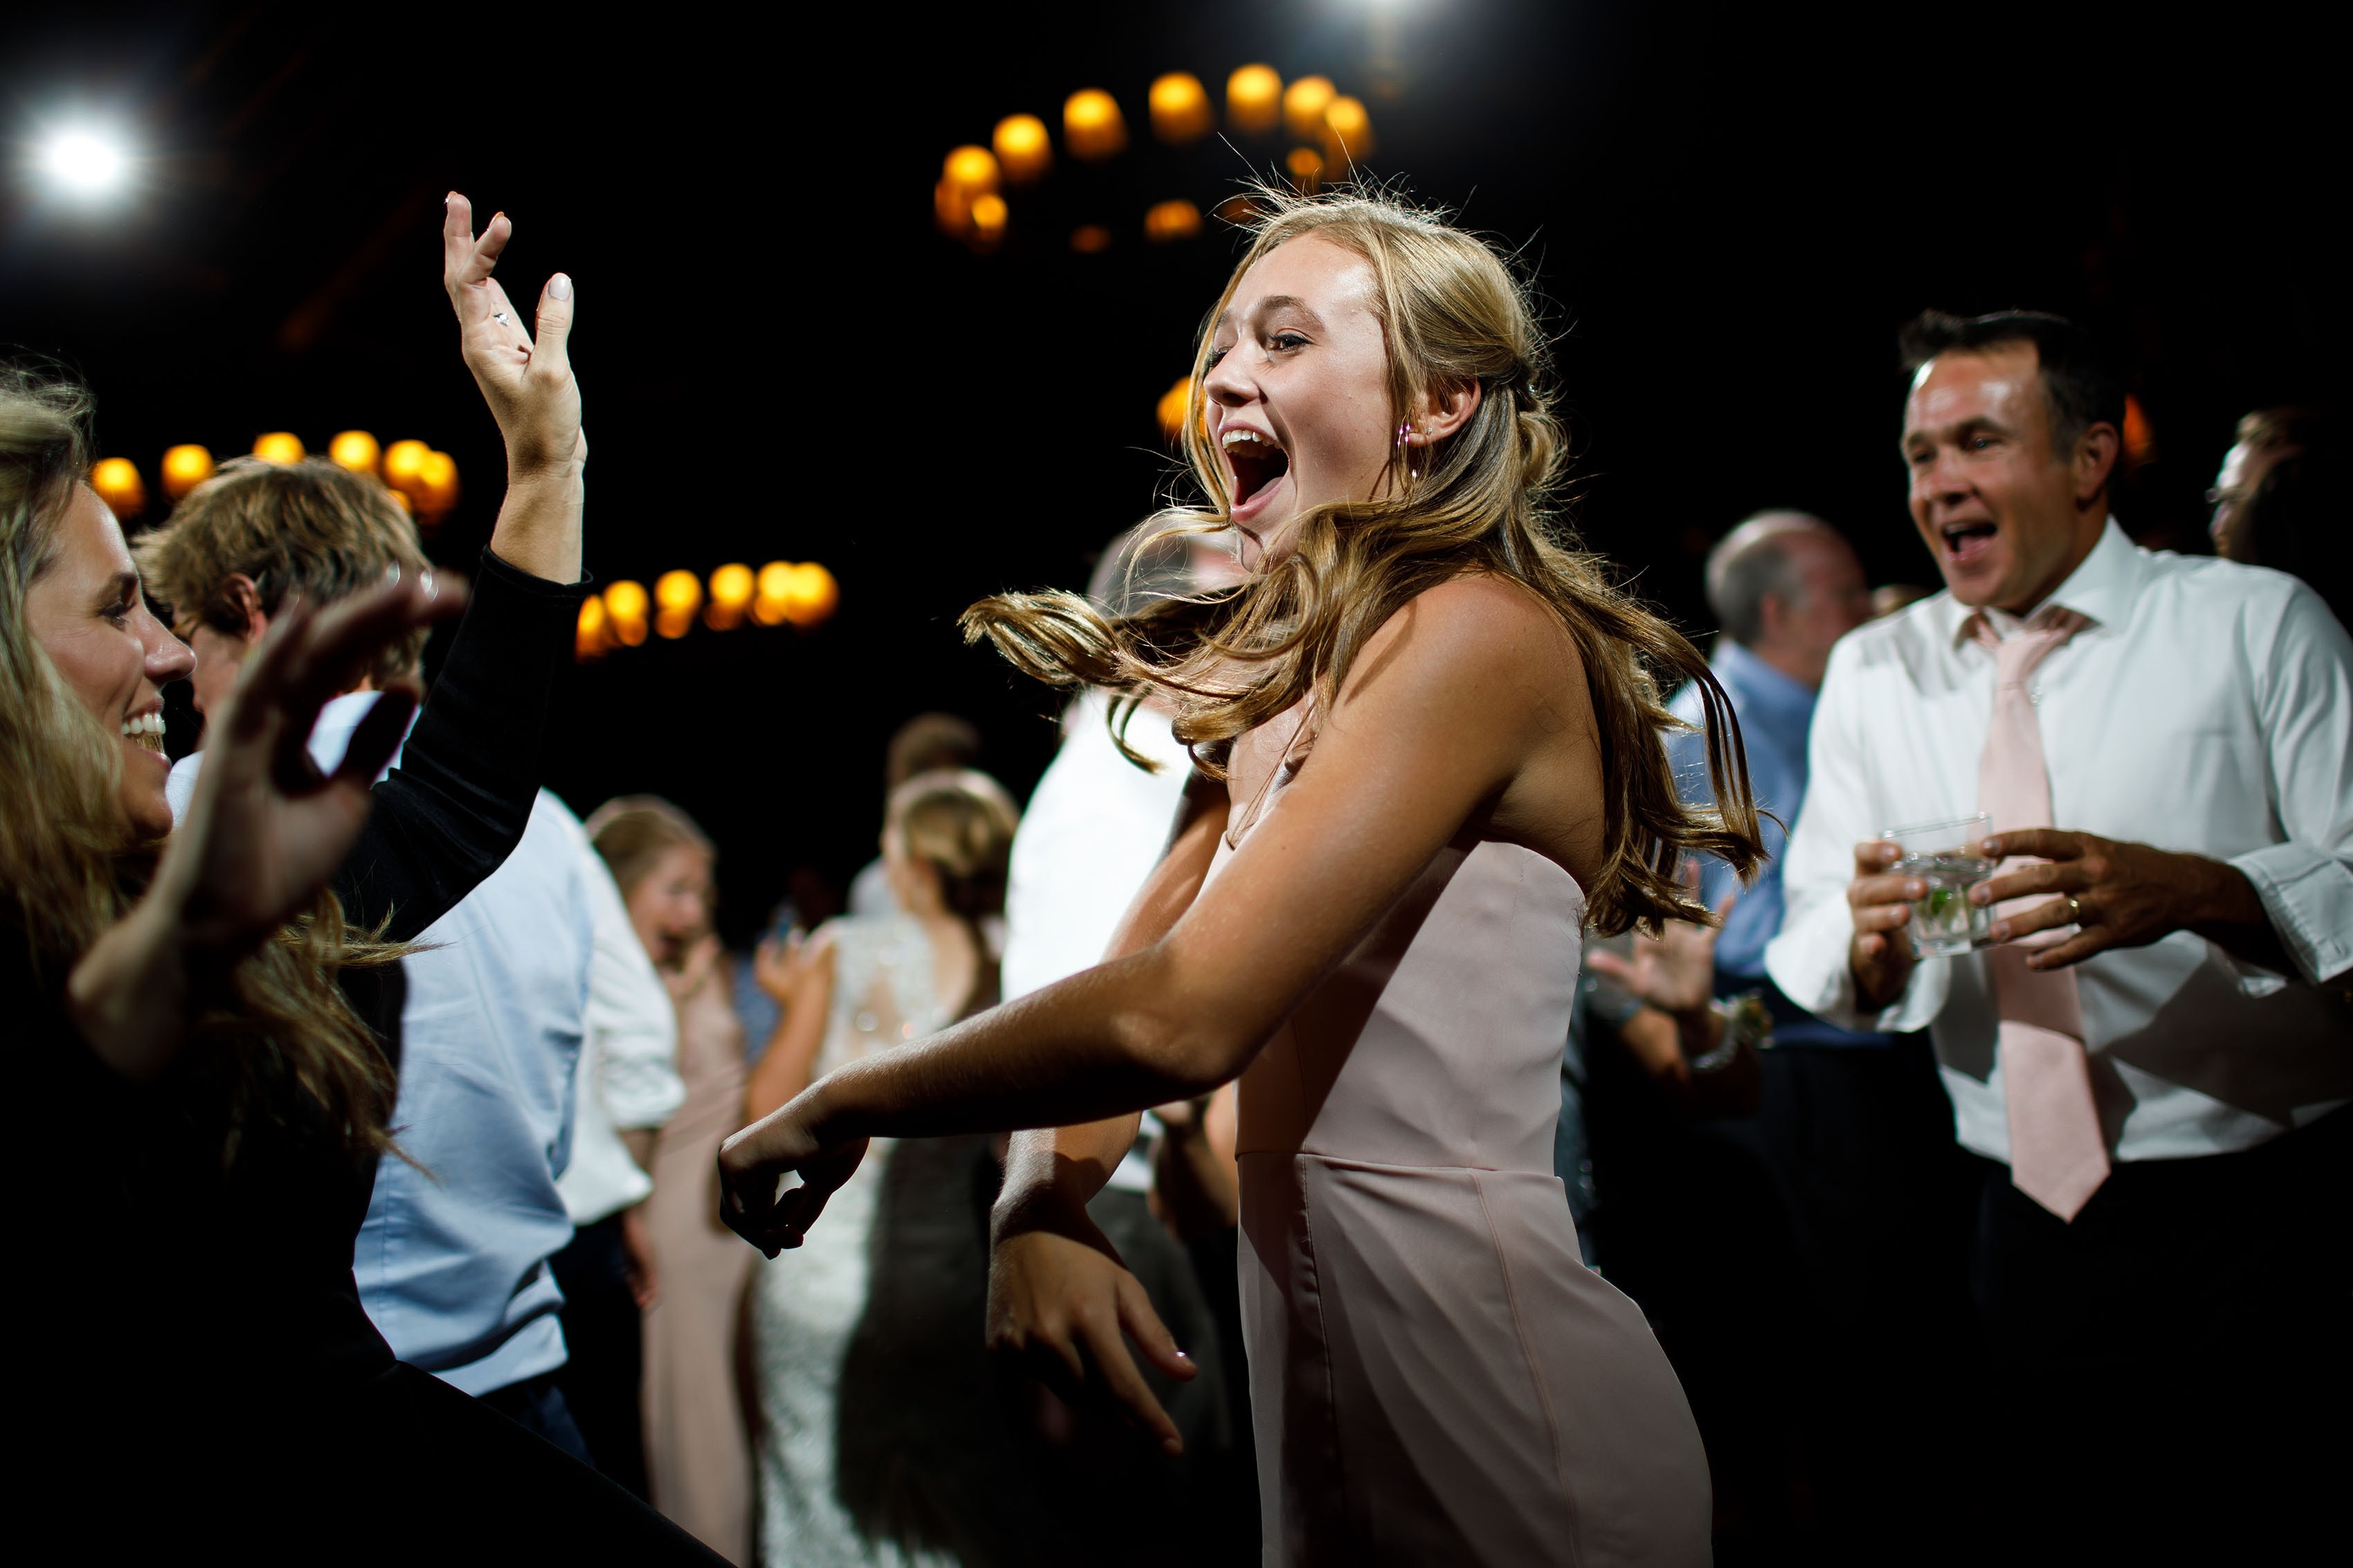 Guests dance during a wedding at Saddleridge in Beaver Creek